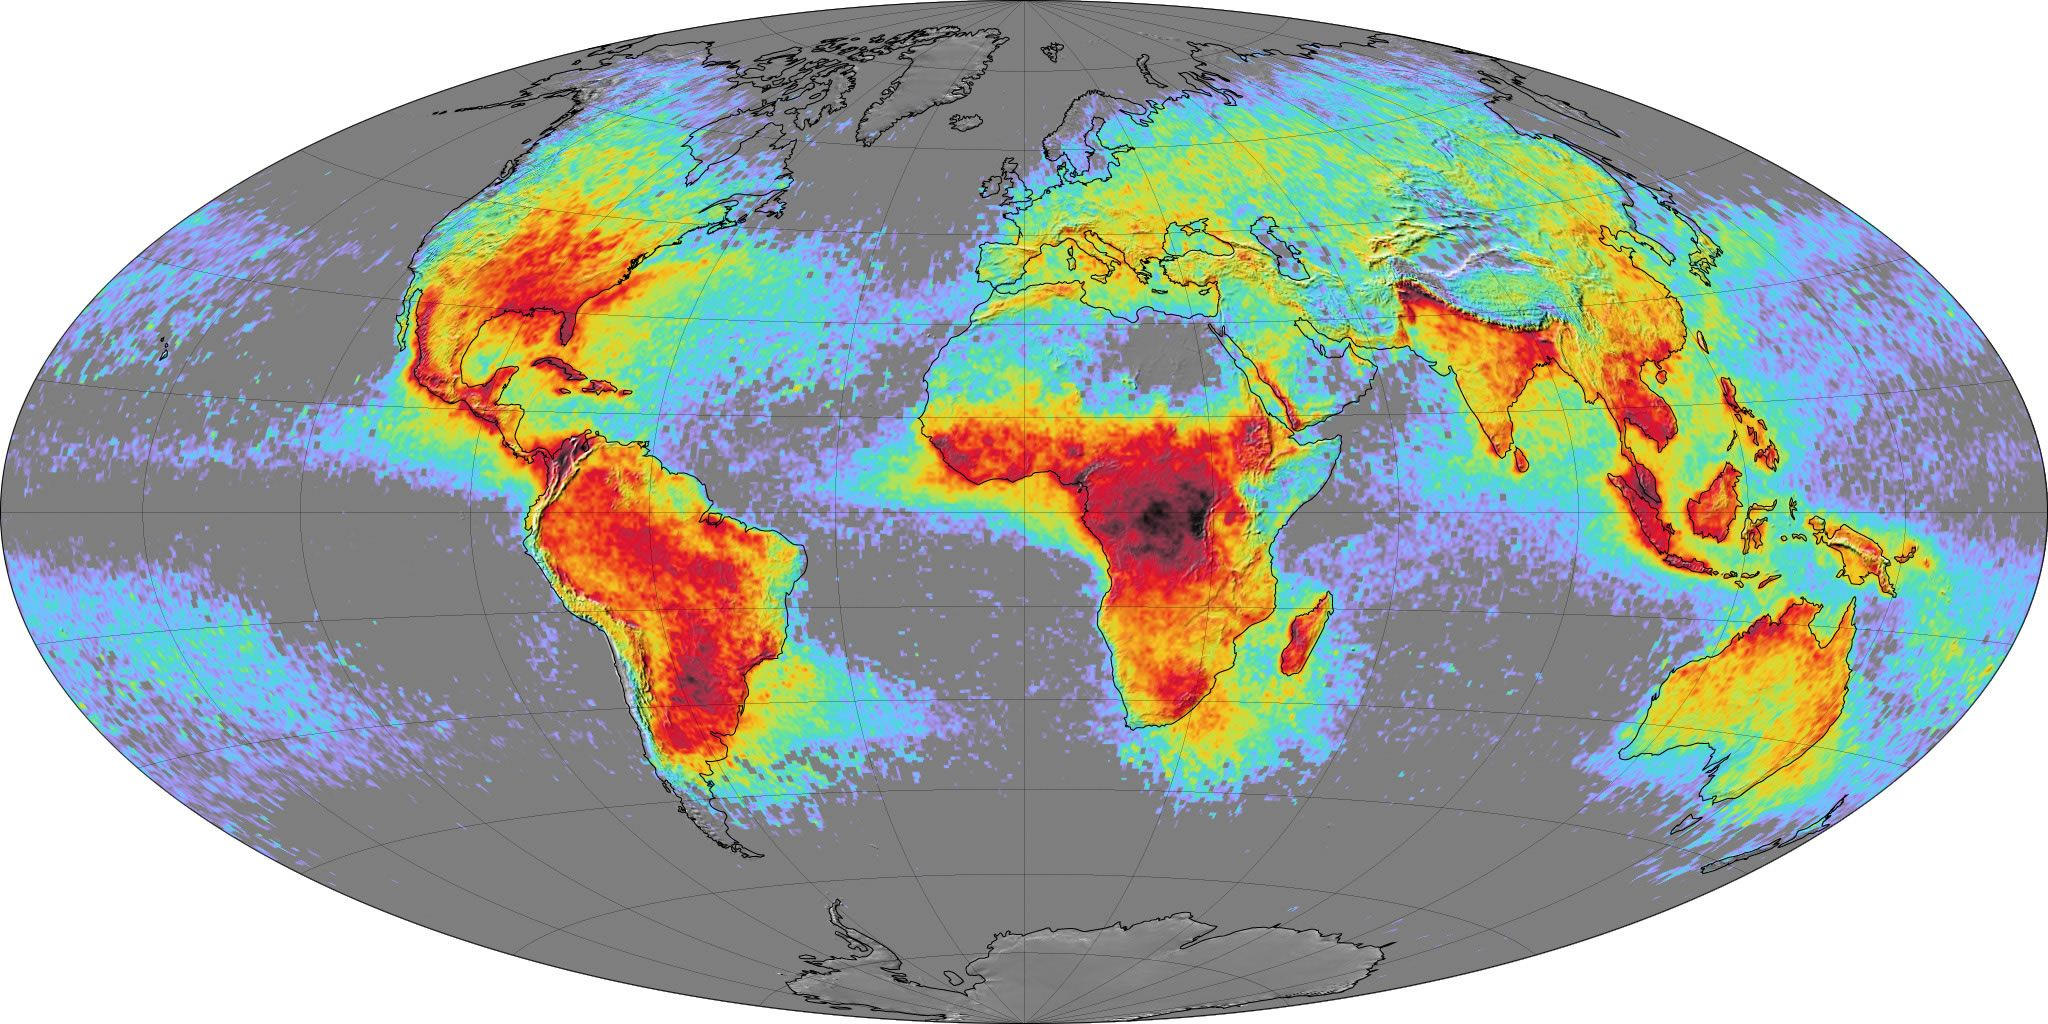 World lightning map science meteorology pinterest lightning world lightning map lightning maplightning strikesearth scienceworld gumiabroncs Images